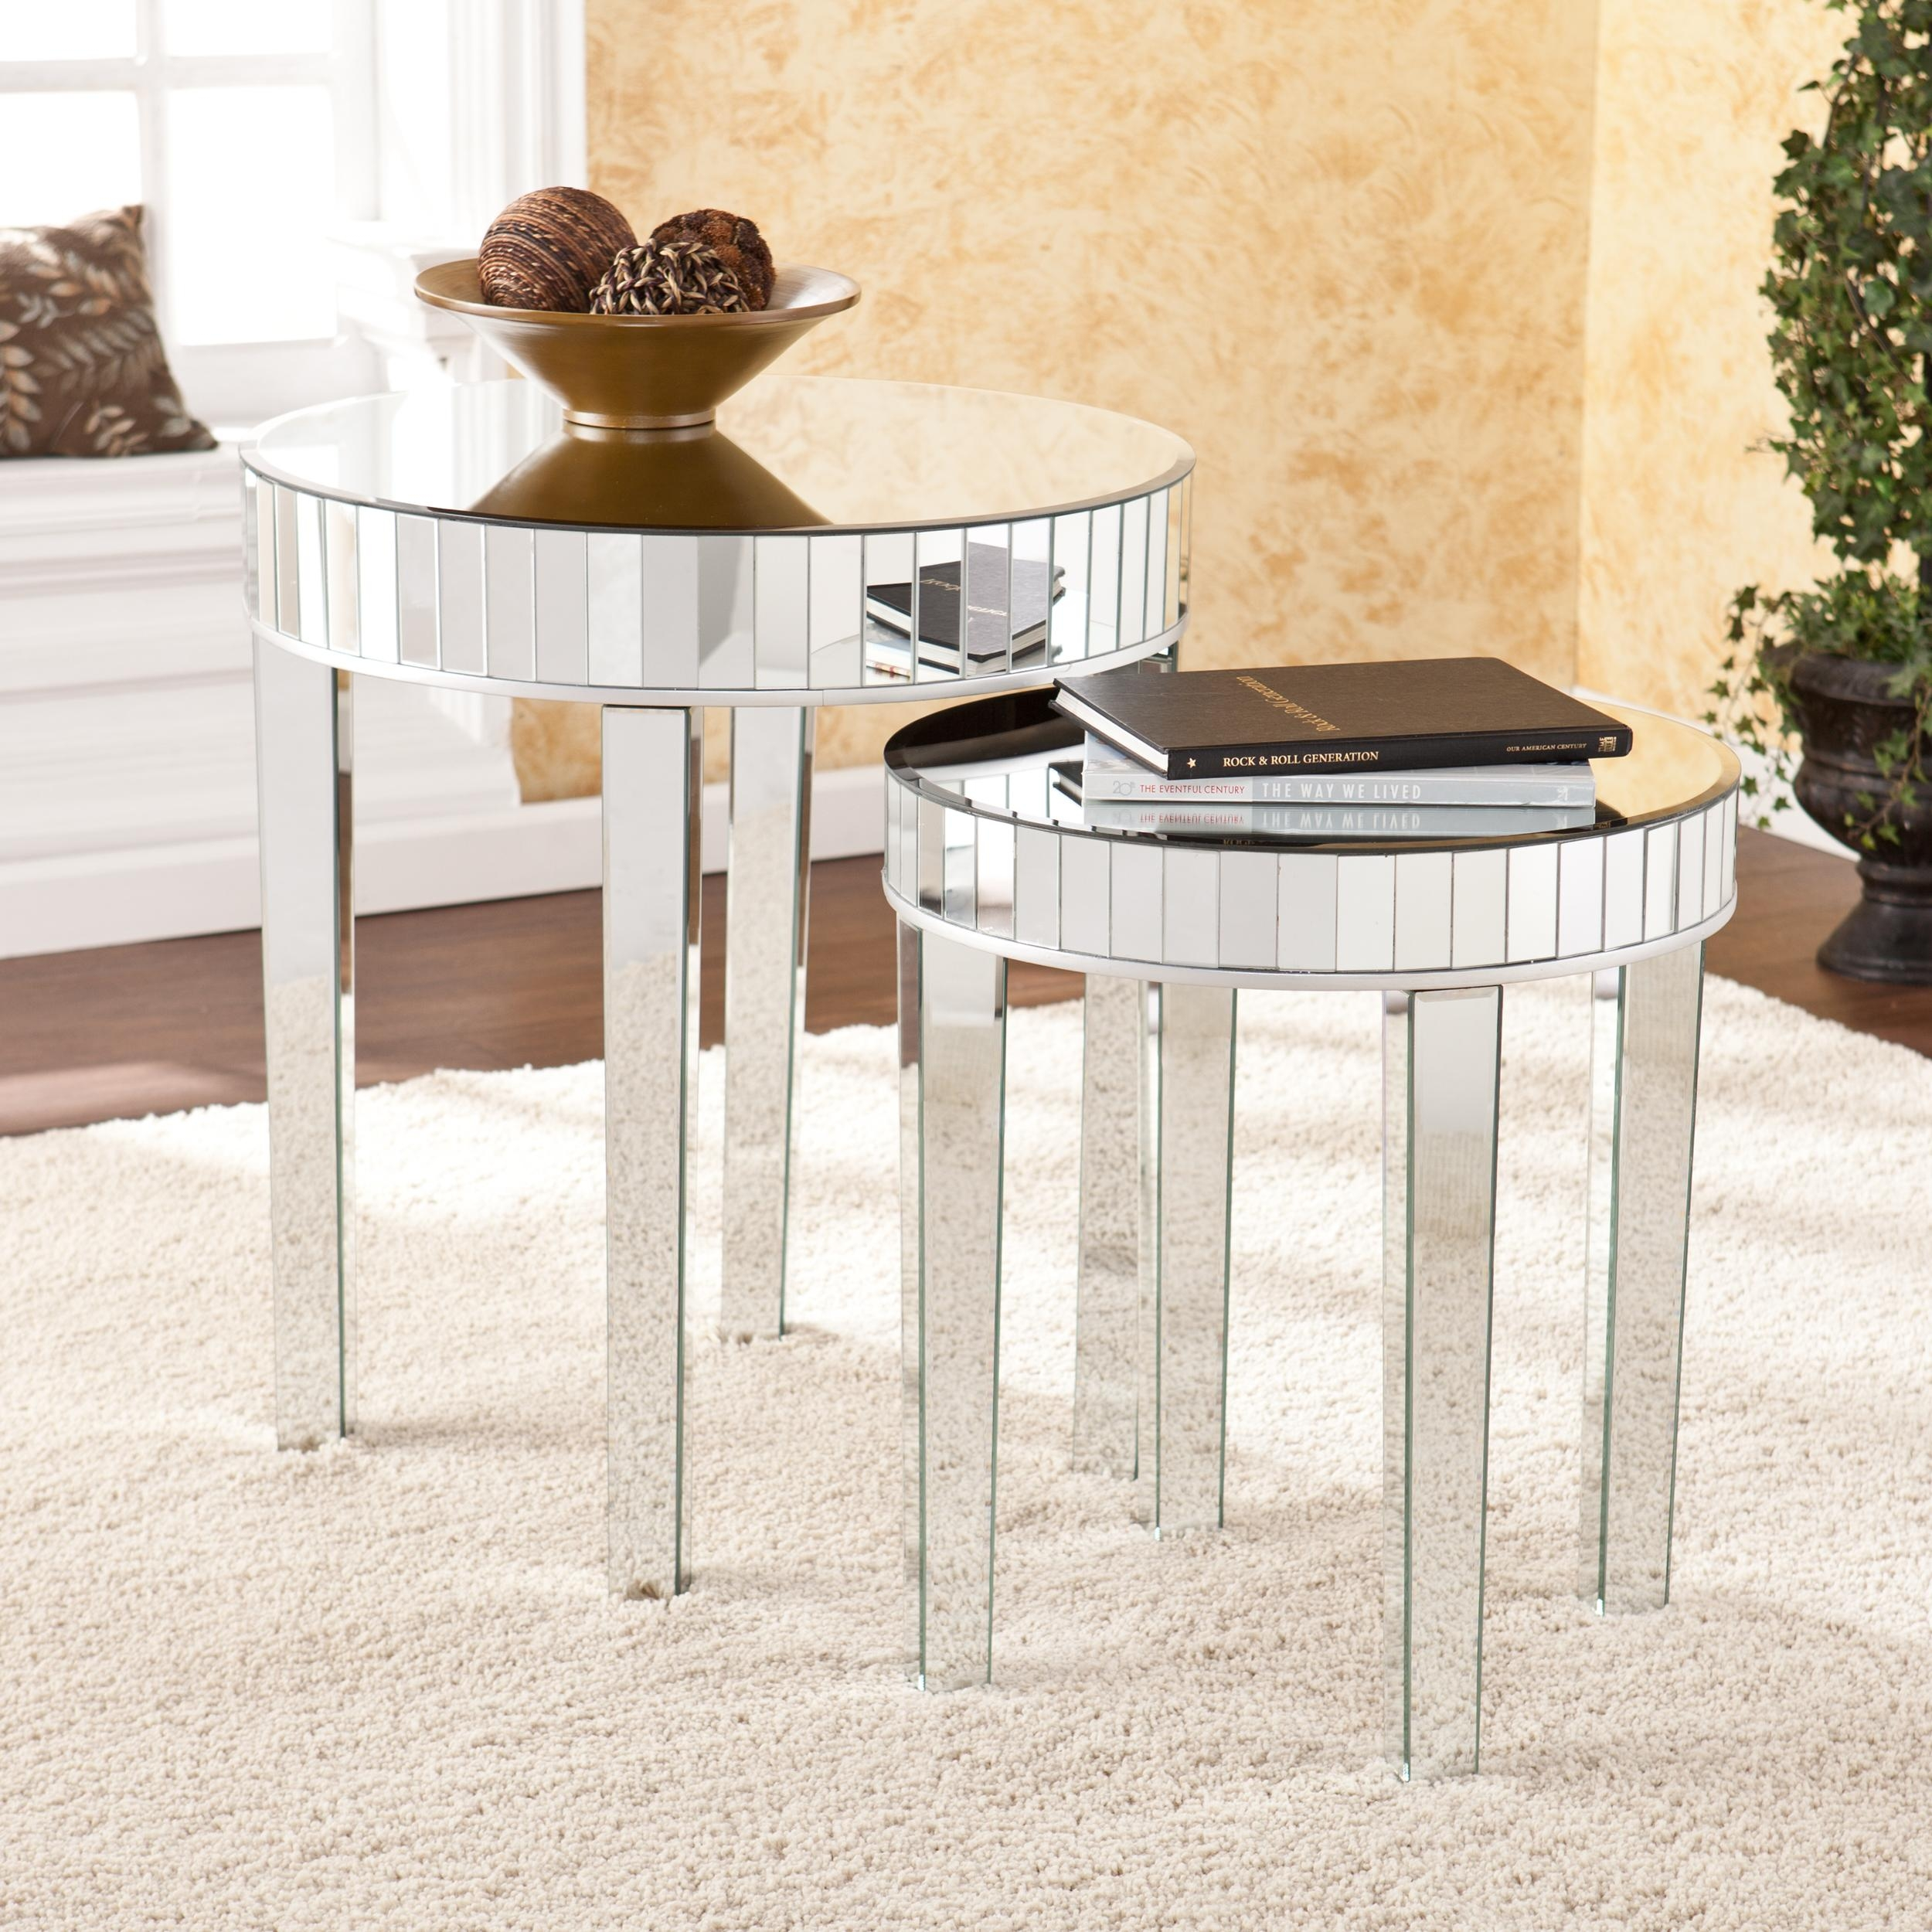 Bon Southern Enterprises Southern Enterprises Mirrored 2 Piece Round Nesting  Table Set, Silver, MDF